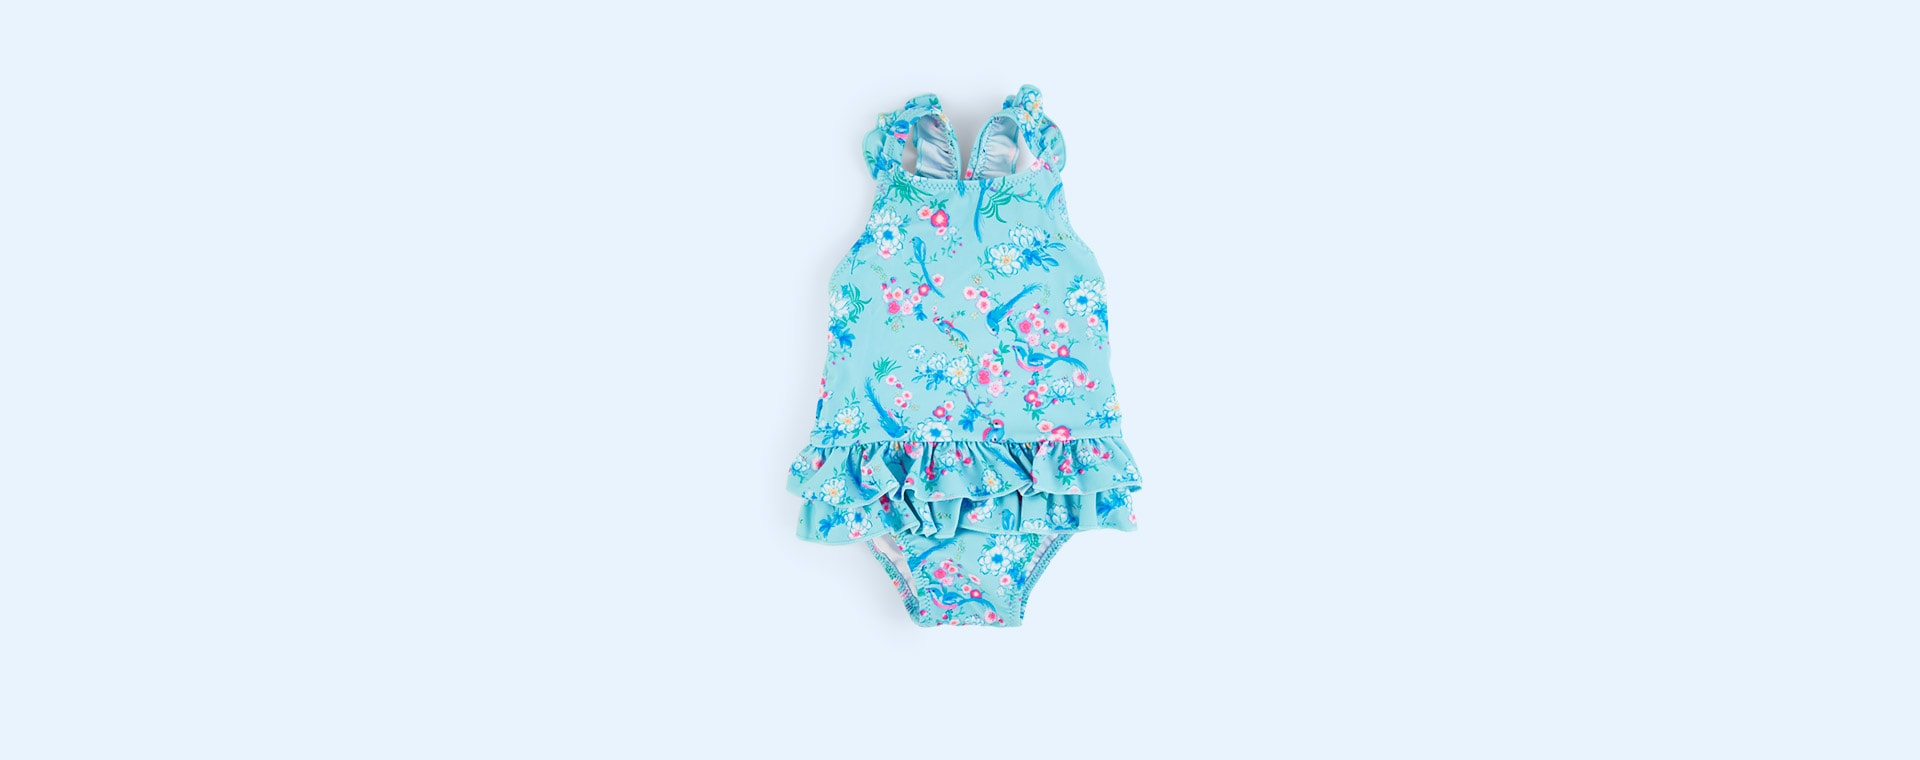 Aqua Sunuva Baby Girls Frill Swimsuit